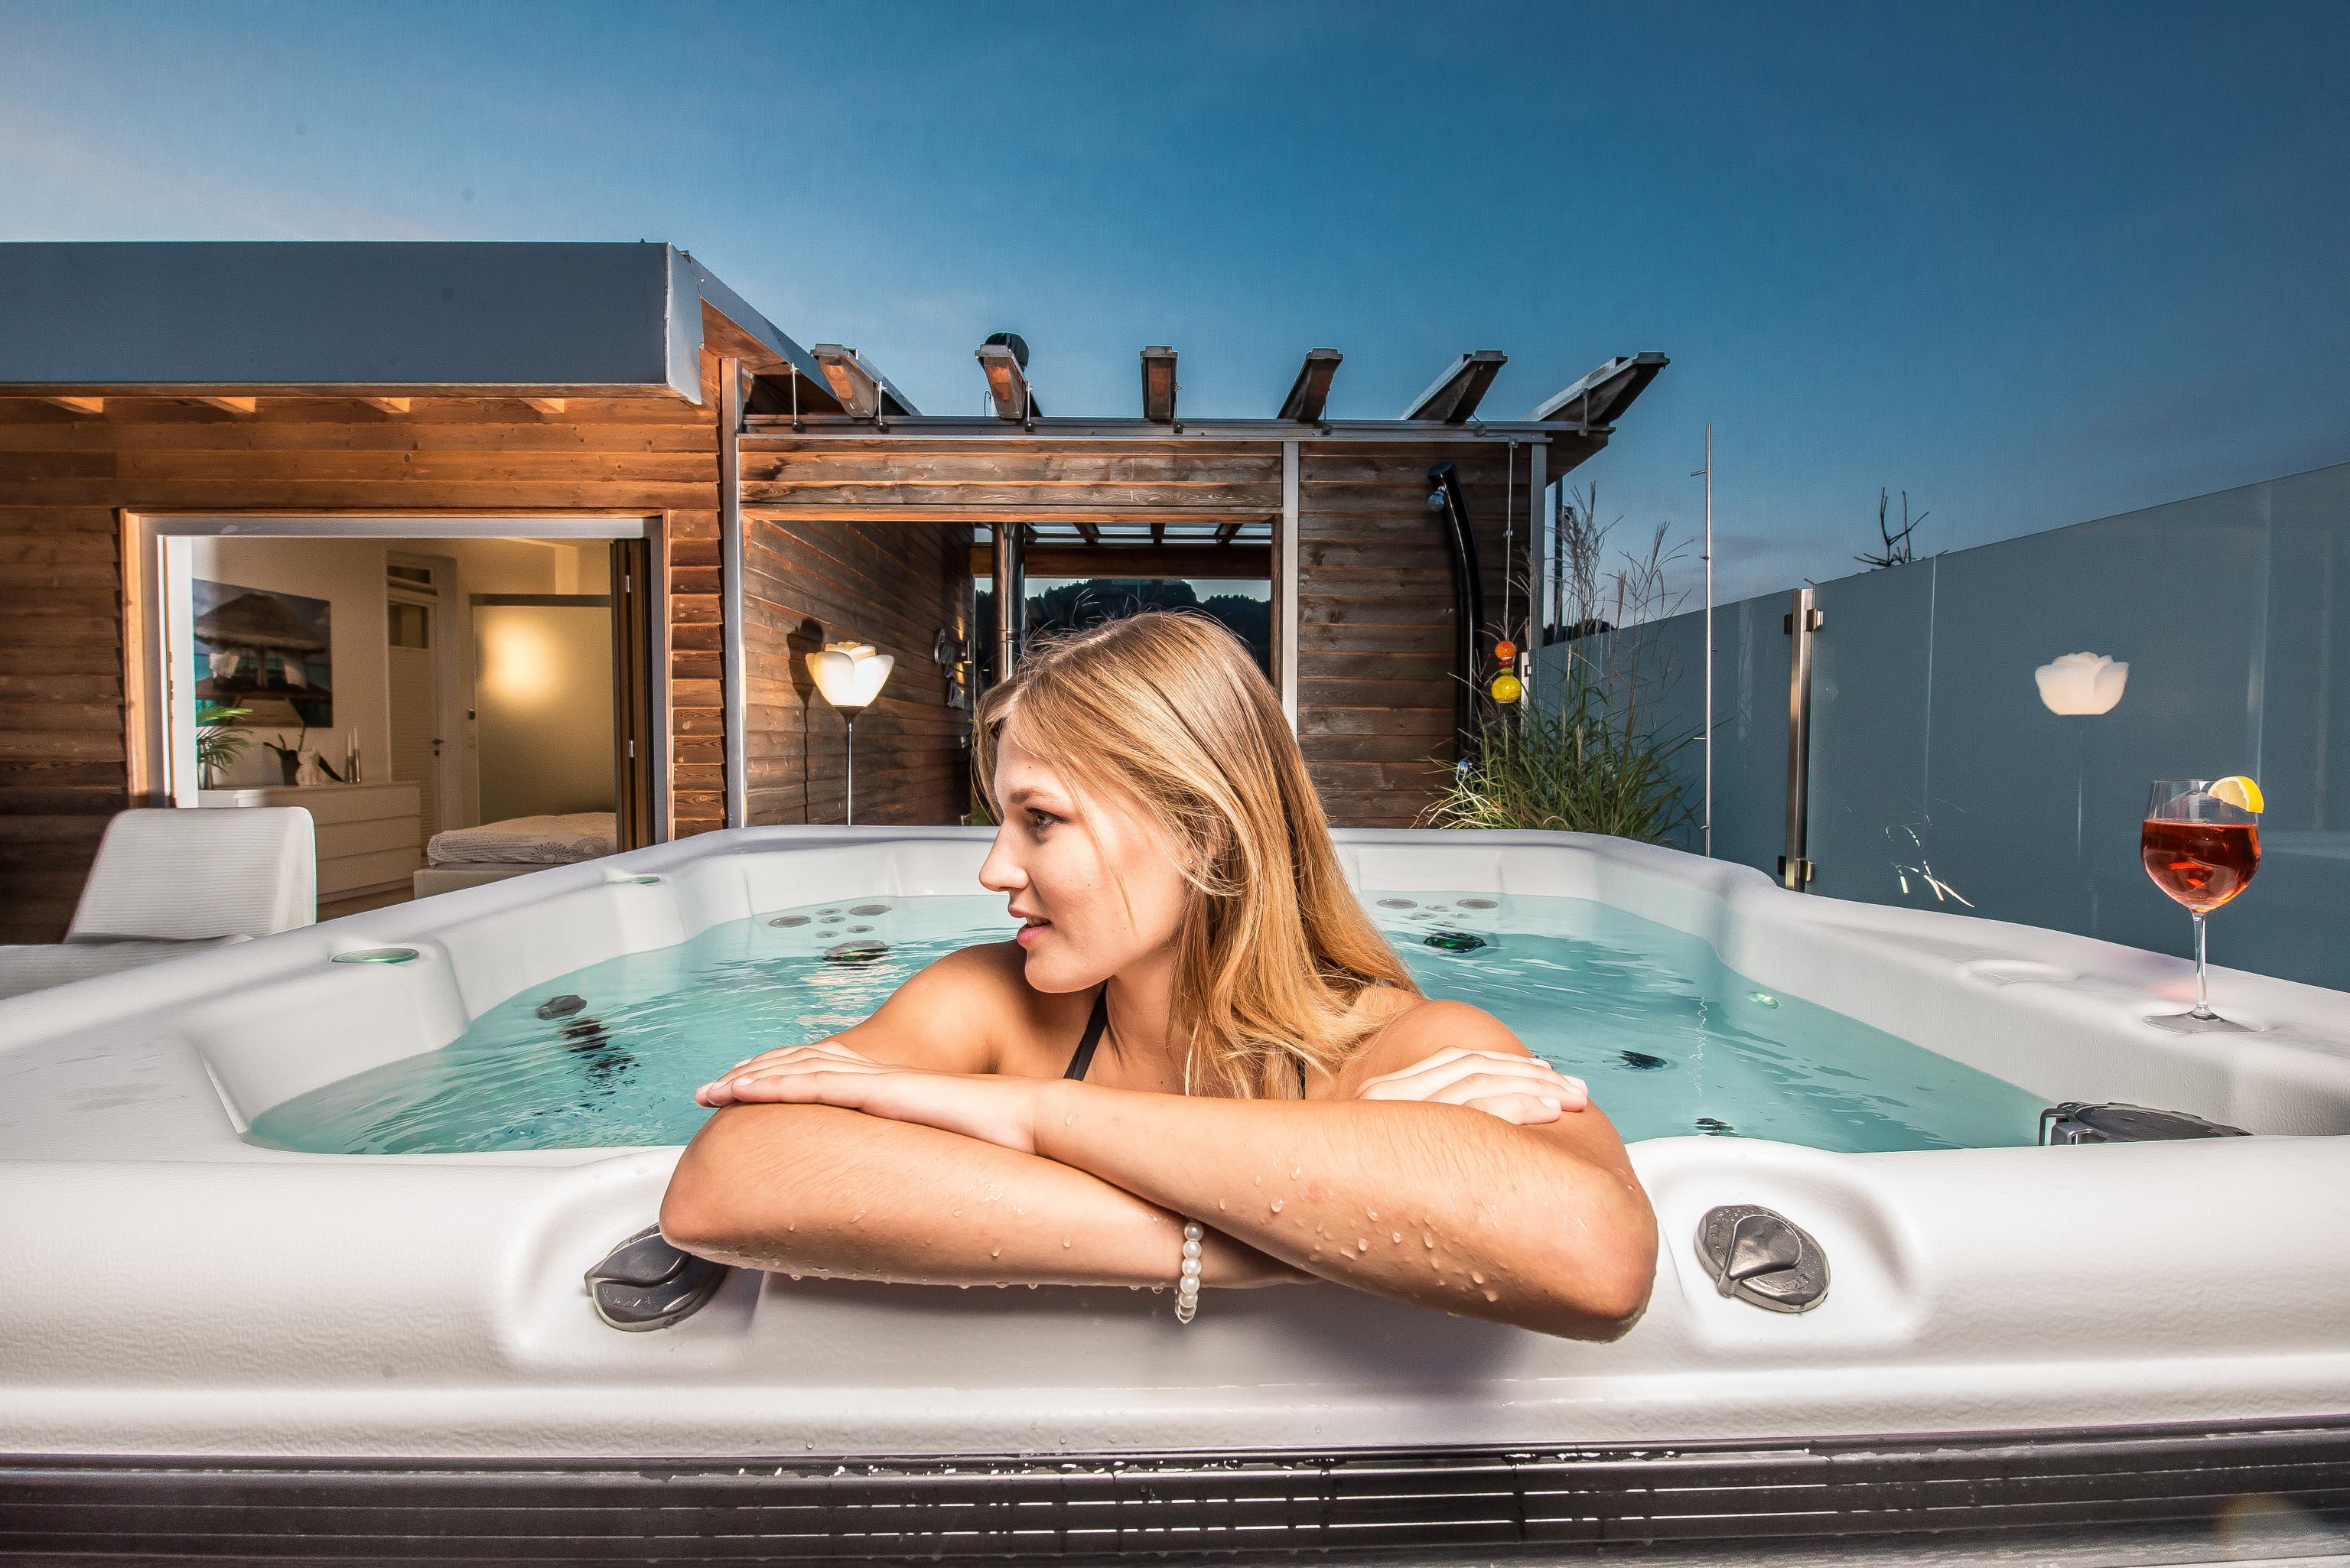 swim edge infinity me near spas dealers tub slide coast hot tubs